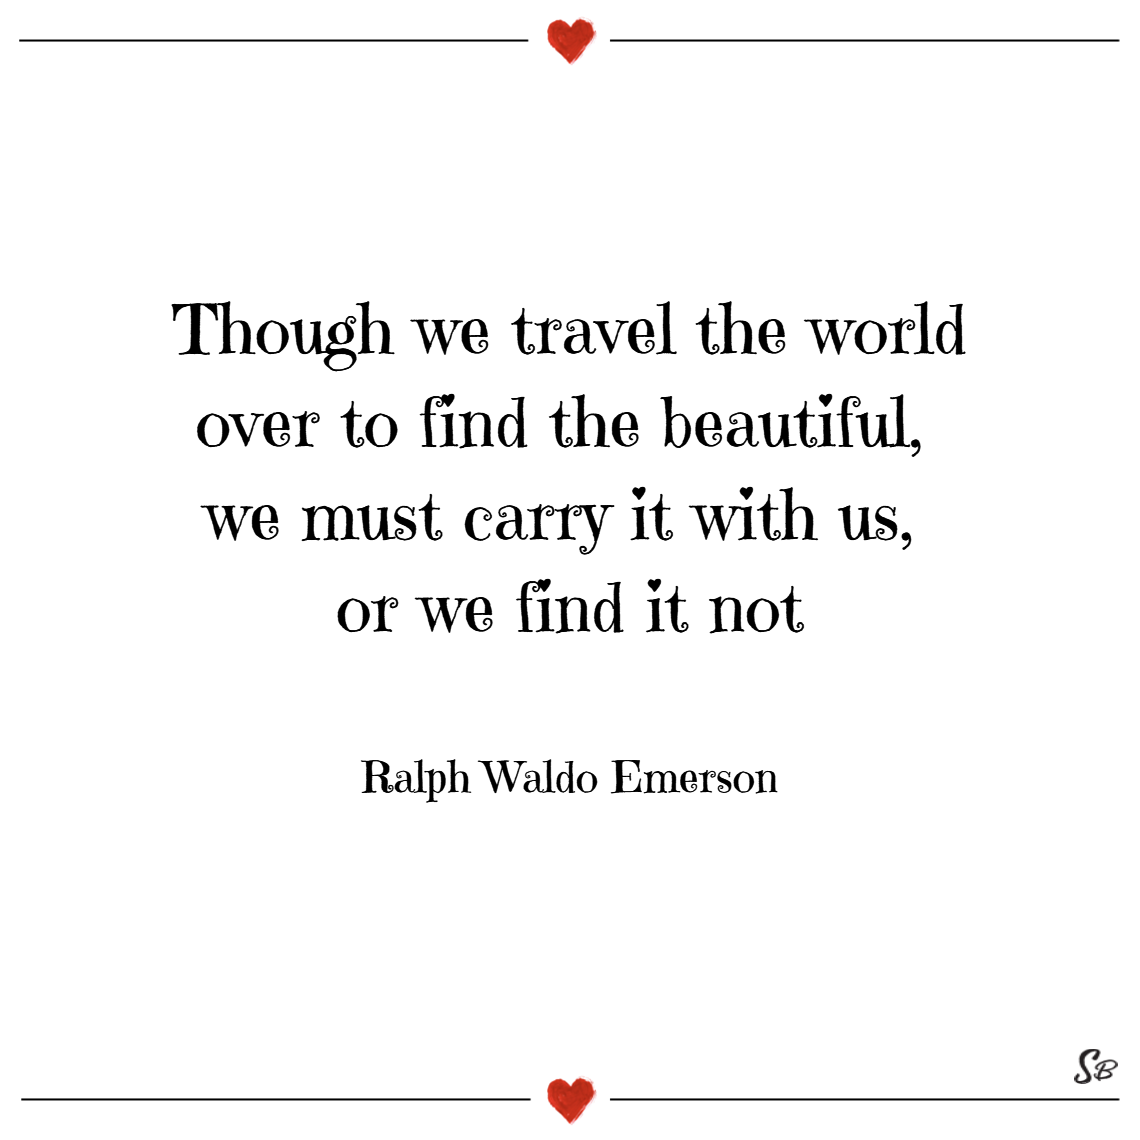 Though we travel the world over to find the beautiful, we must carry it with us, or we find it not. – ralph waldo emerson Beauty quotes